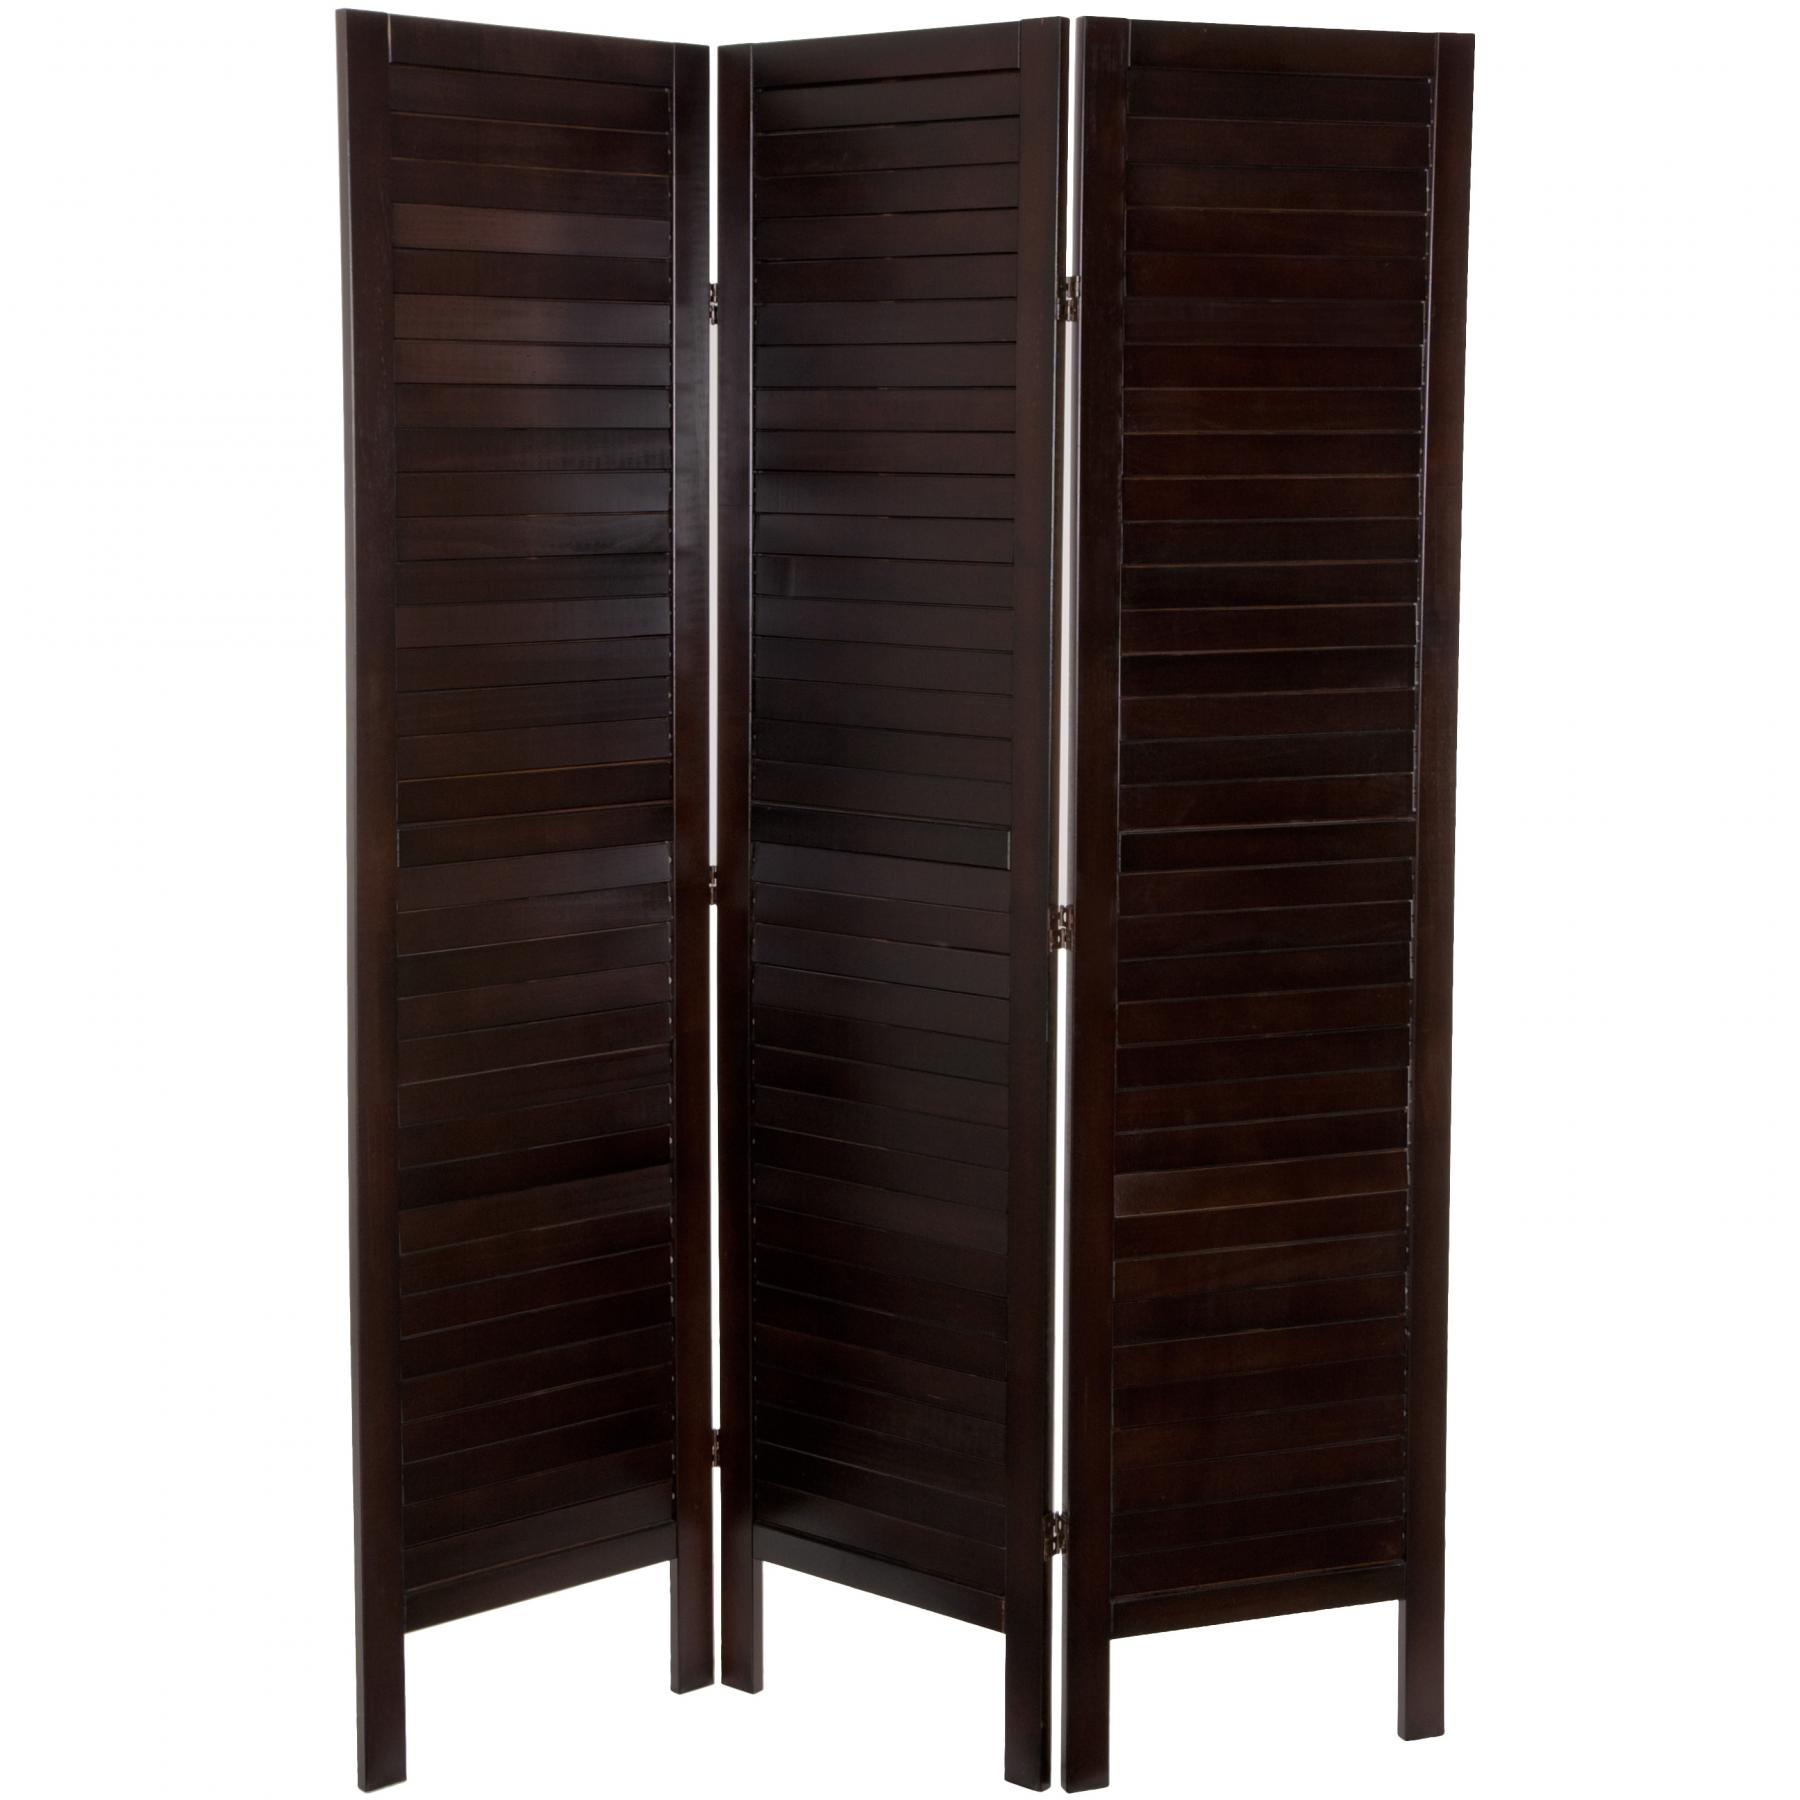 6 Ft Tall Double Shutter Room Divider  Roomdividersm. Denver Home Builders. Lowes Cleveland Tn. Bedside Bench. Delivery Box. Bedroom Themes. Mayo Furniture Reviews. Daltile Austin. Airplane Propeller Ceiling Fan